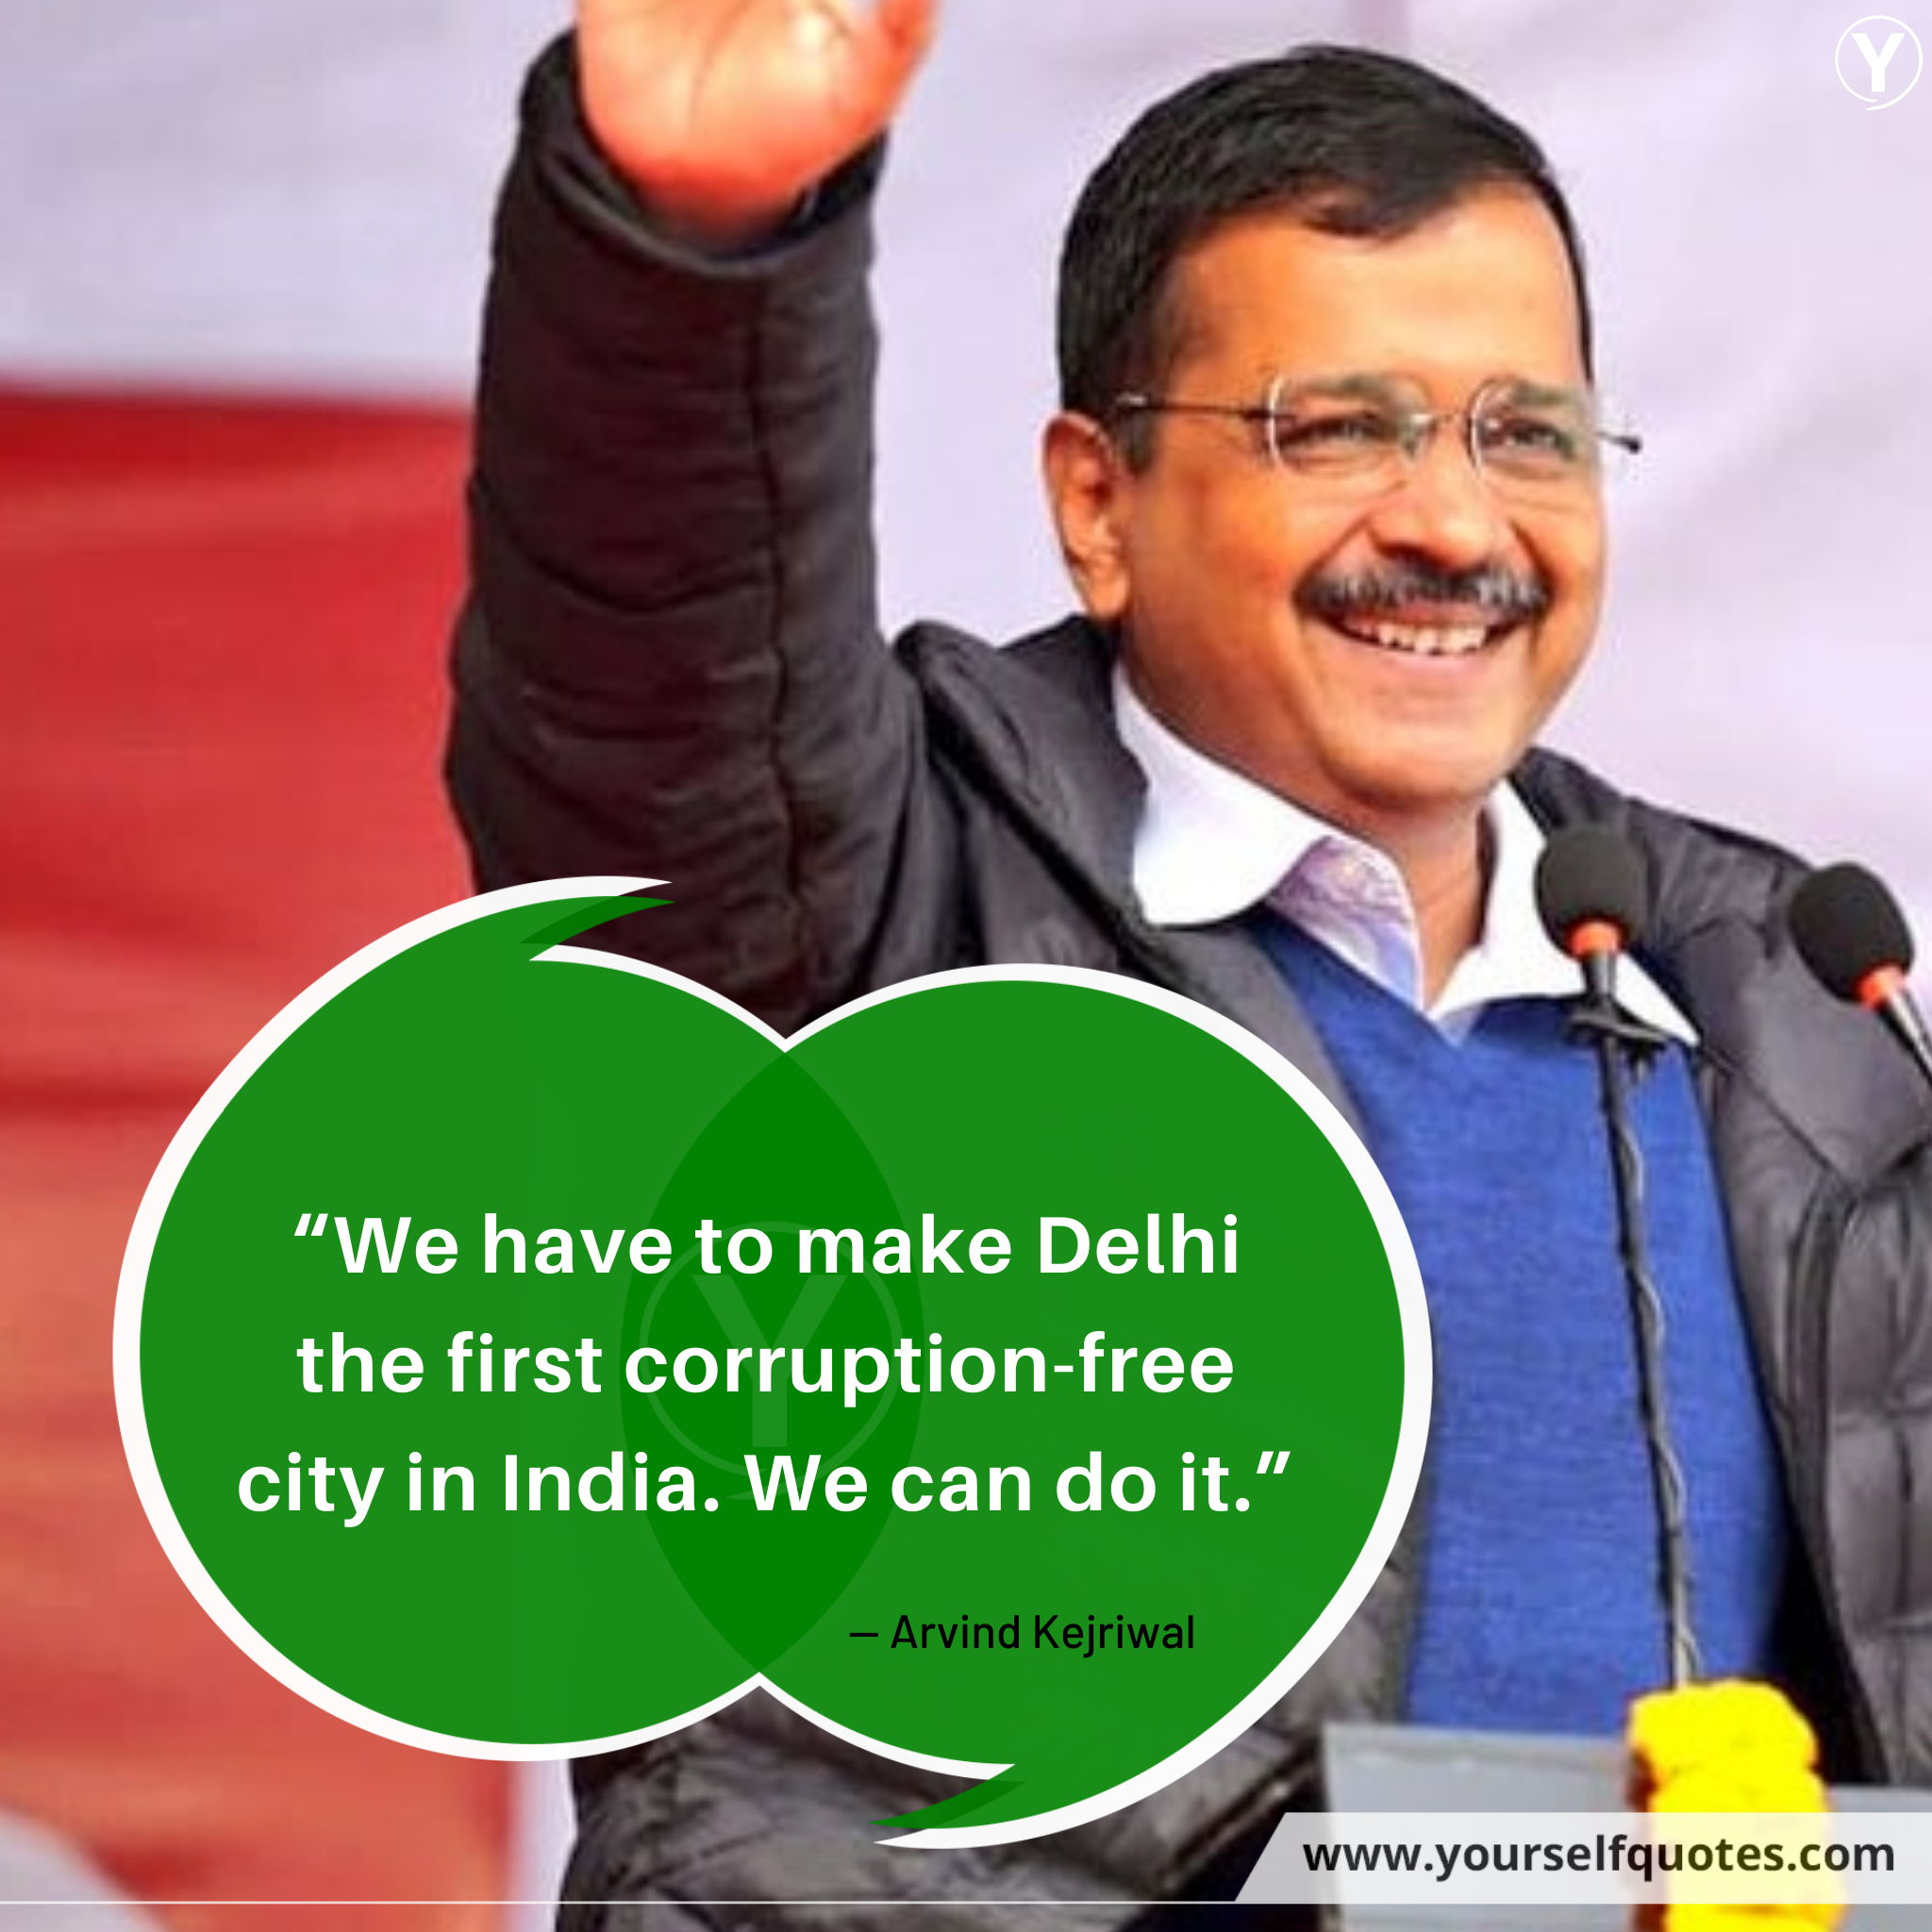 CM Delhi Arvind Kejriwal Quotes images